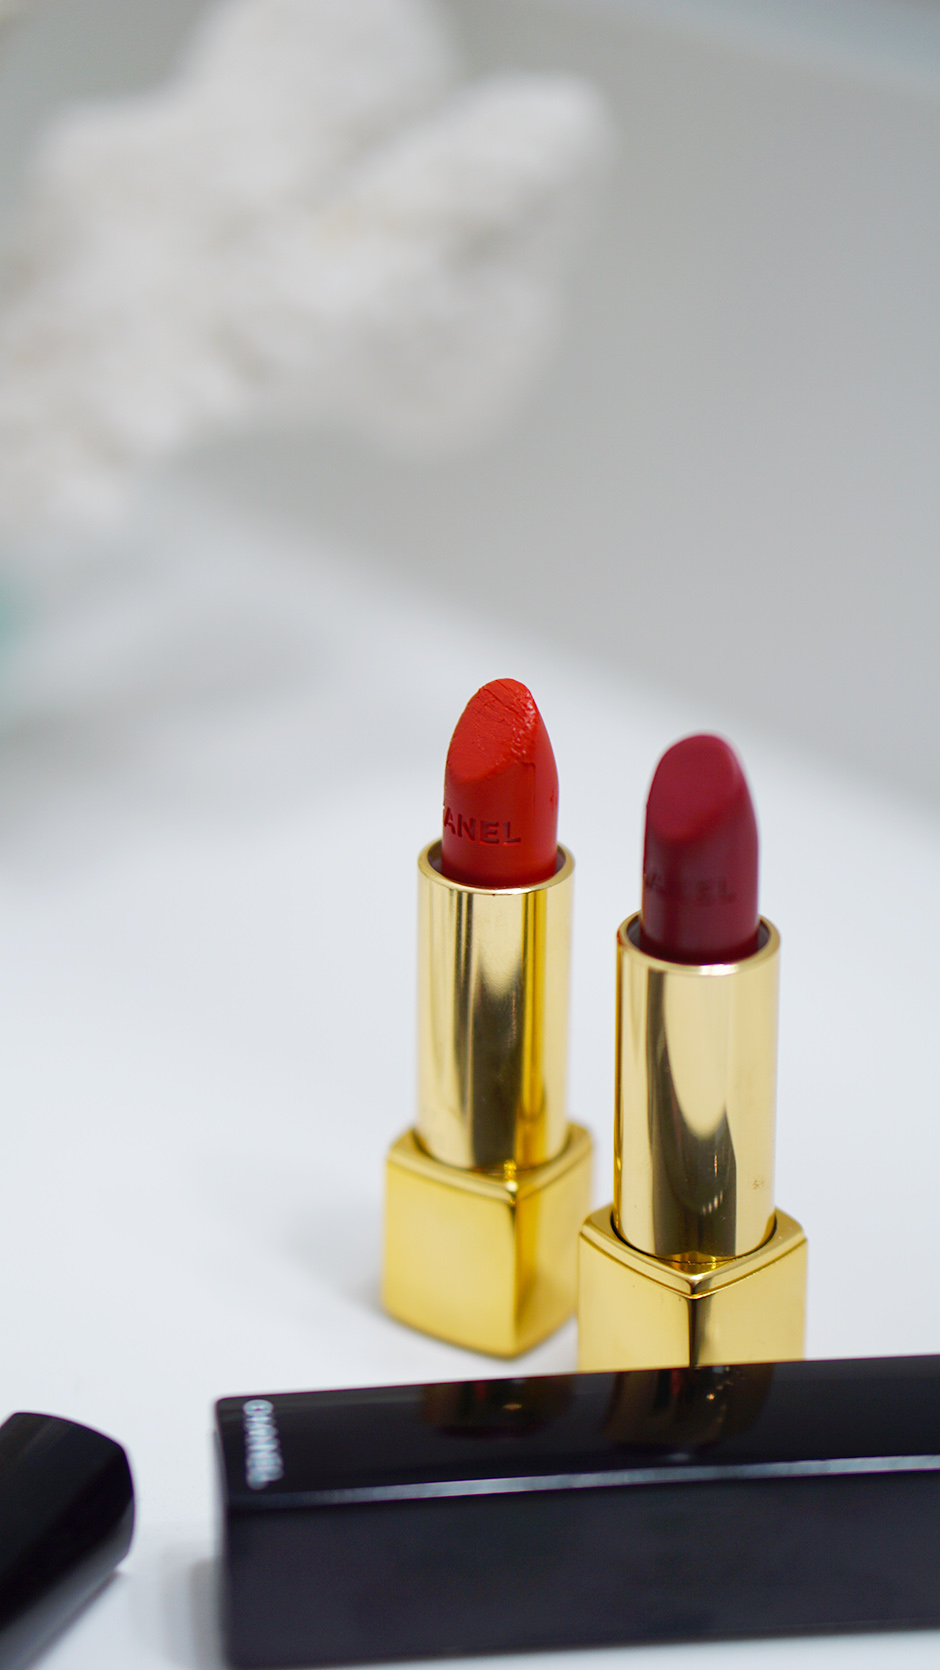 Chanel Beauty Rouge Allure Velvet Luminous Matte Lip Colour #ad #beautyproducts #truered #chanelbeauty #chanelpartner #redlipstick #mattelipstick #fashioninspiration #valentinesday #valentinesbeauty